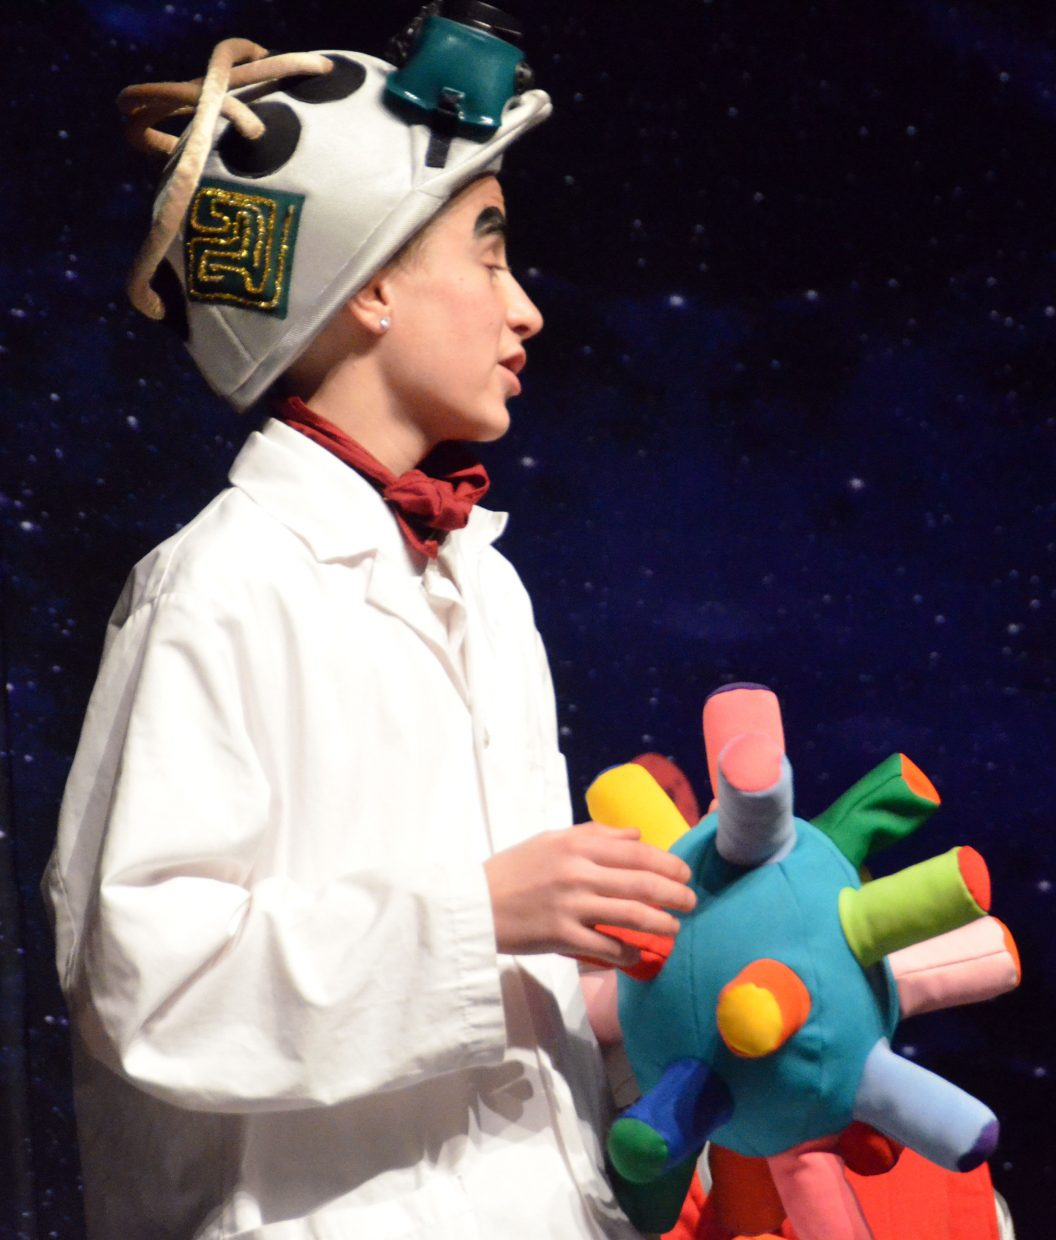 The maniacal scientist of Lapunta (Kasen Tansey) explains his plans in Missoula Children's Theatre's